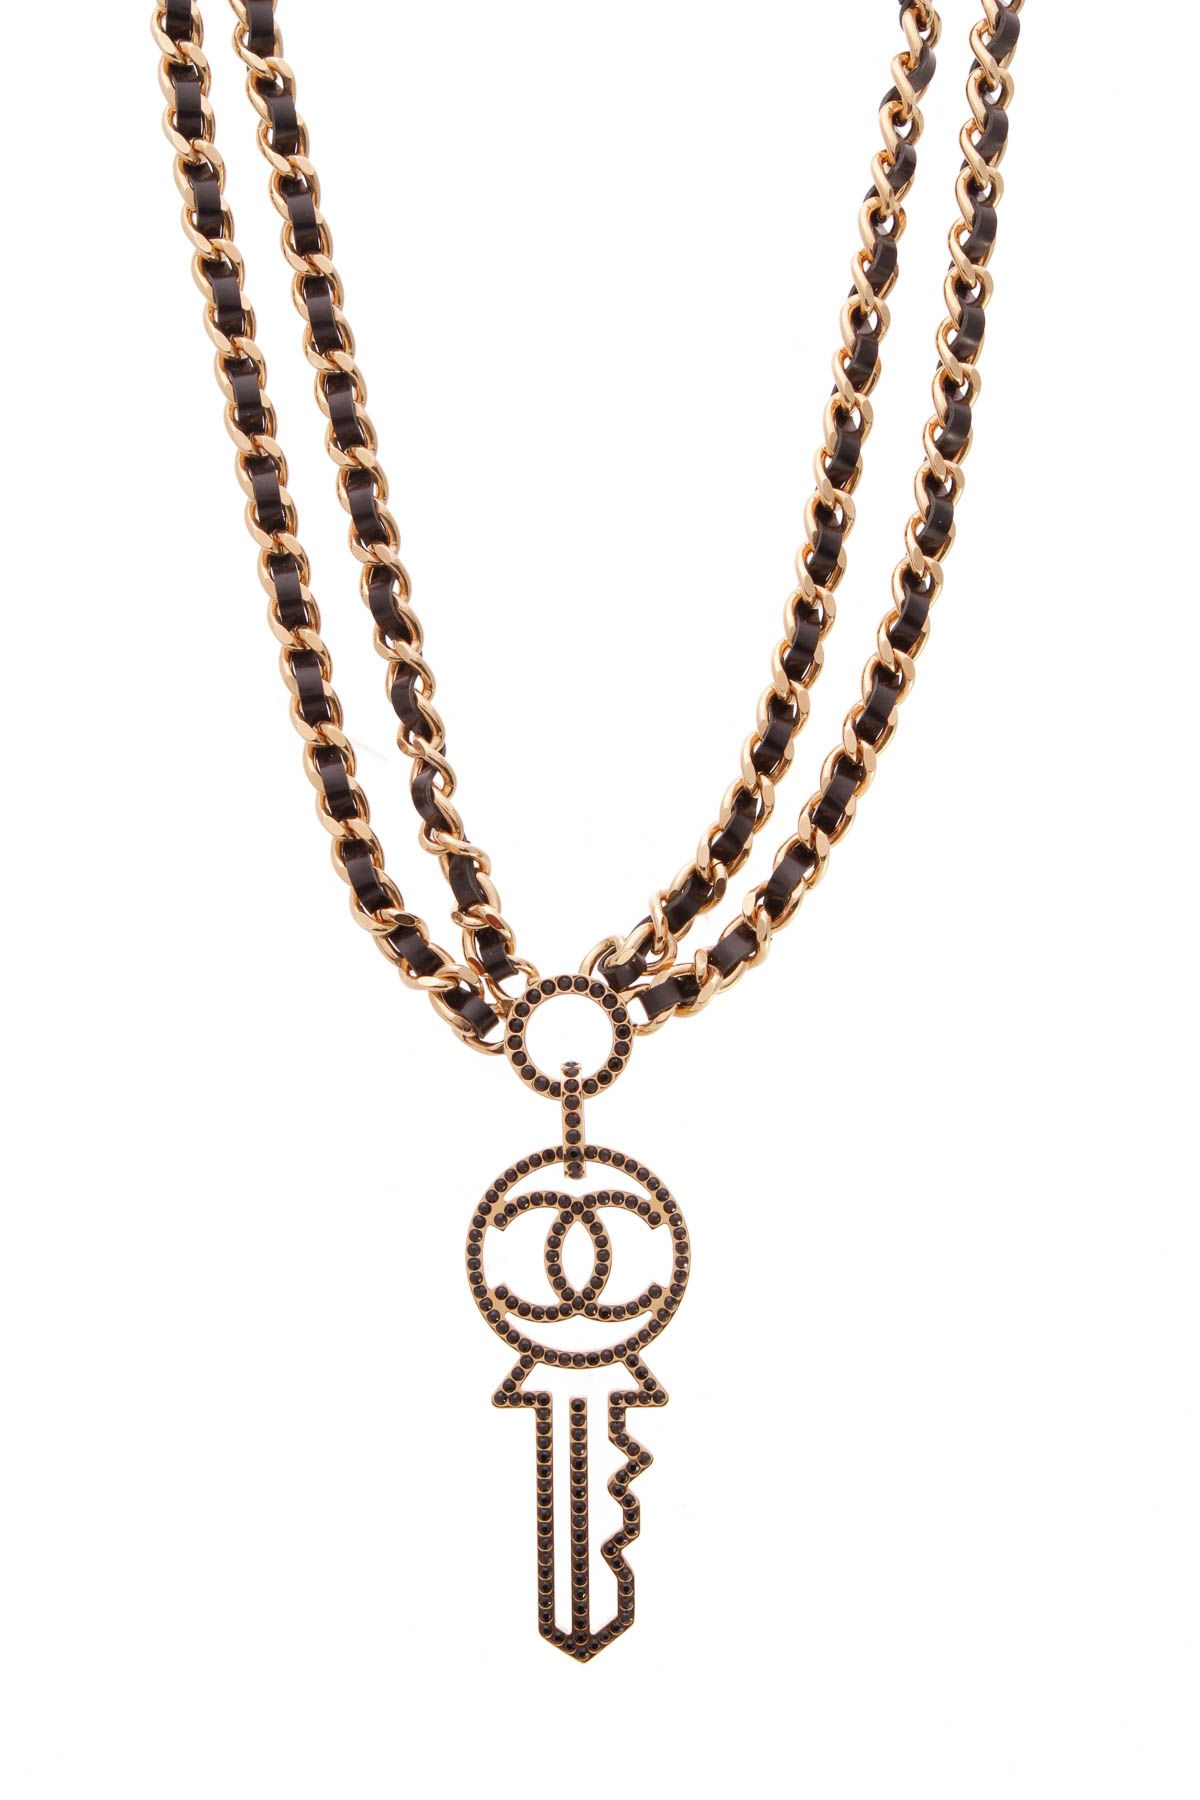 3fccef220d Chanel Key Pendant Necklace - Gold/Black | Crazy for Coco | Gold ...